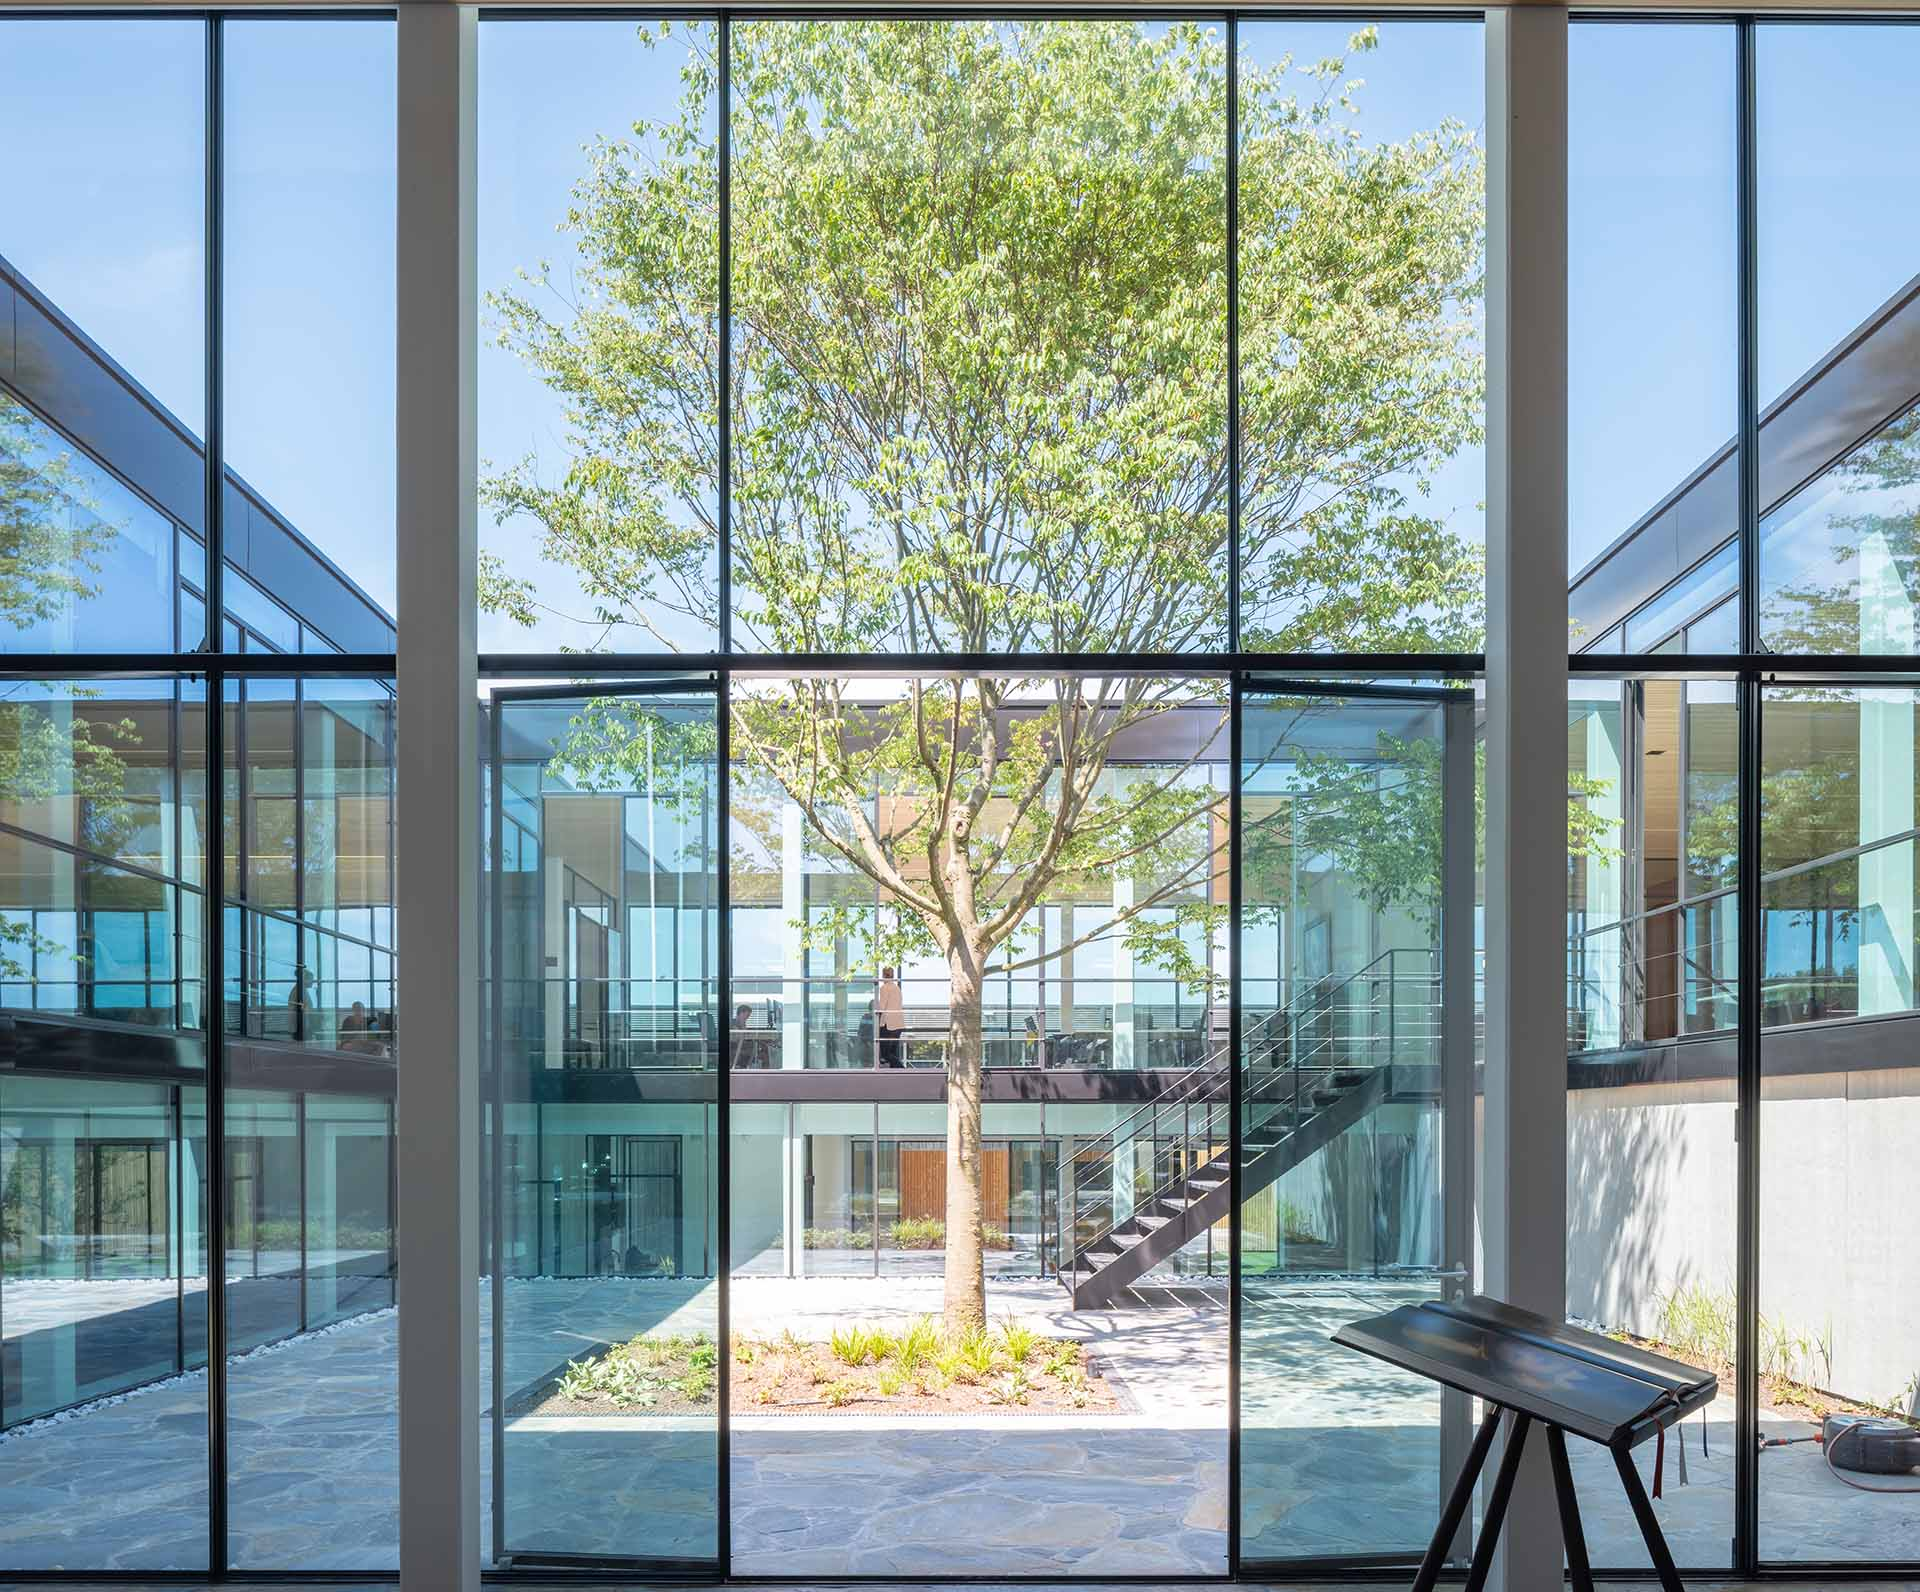 A building with glass walls